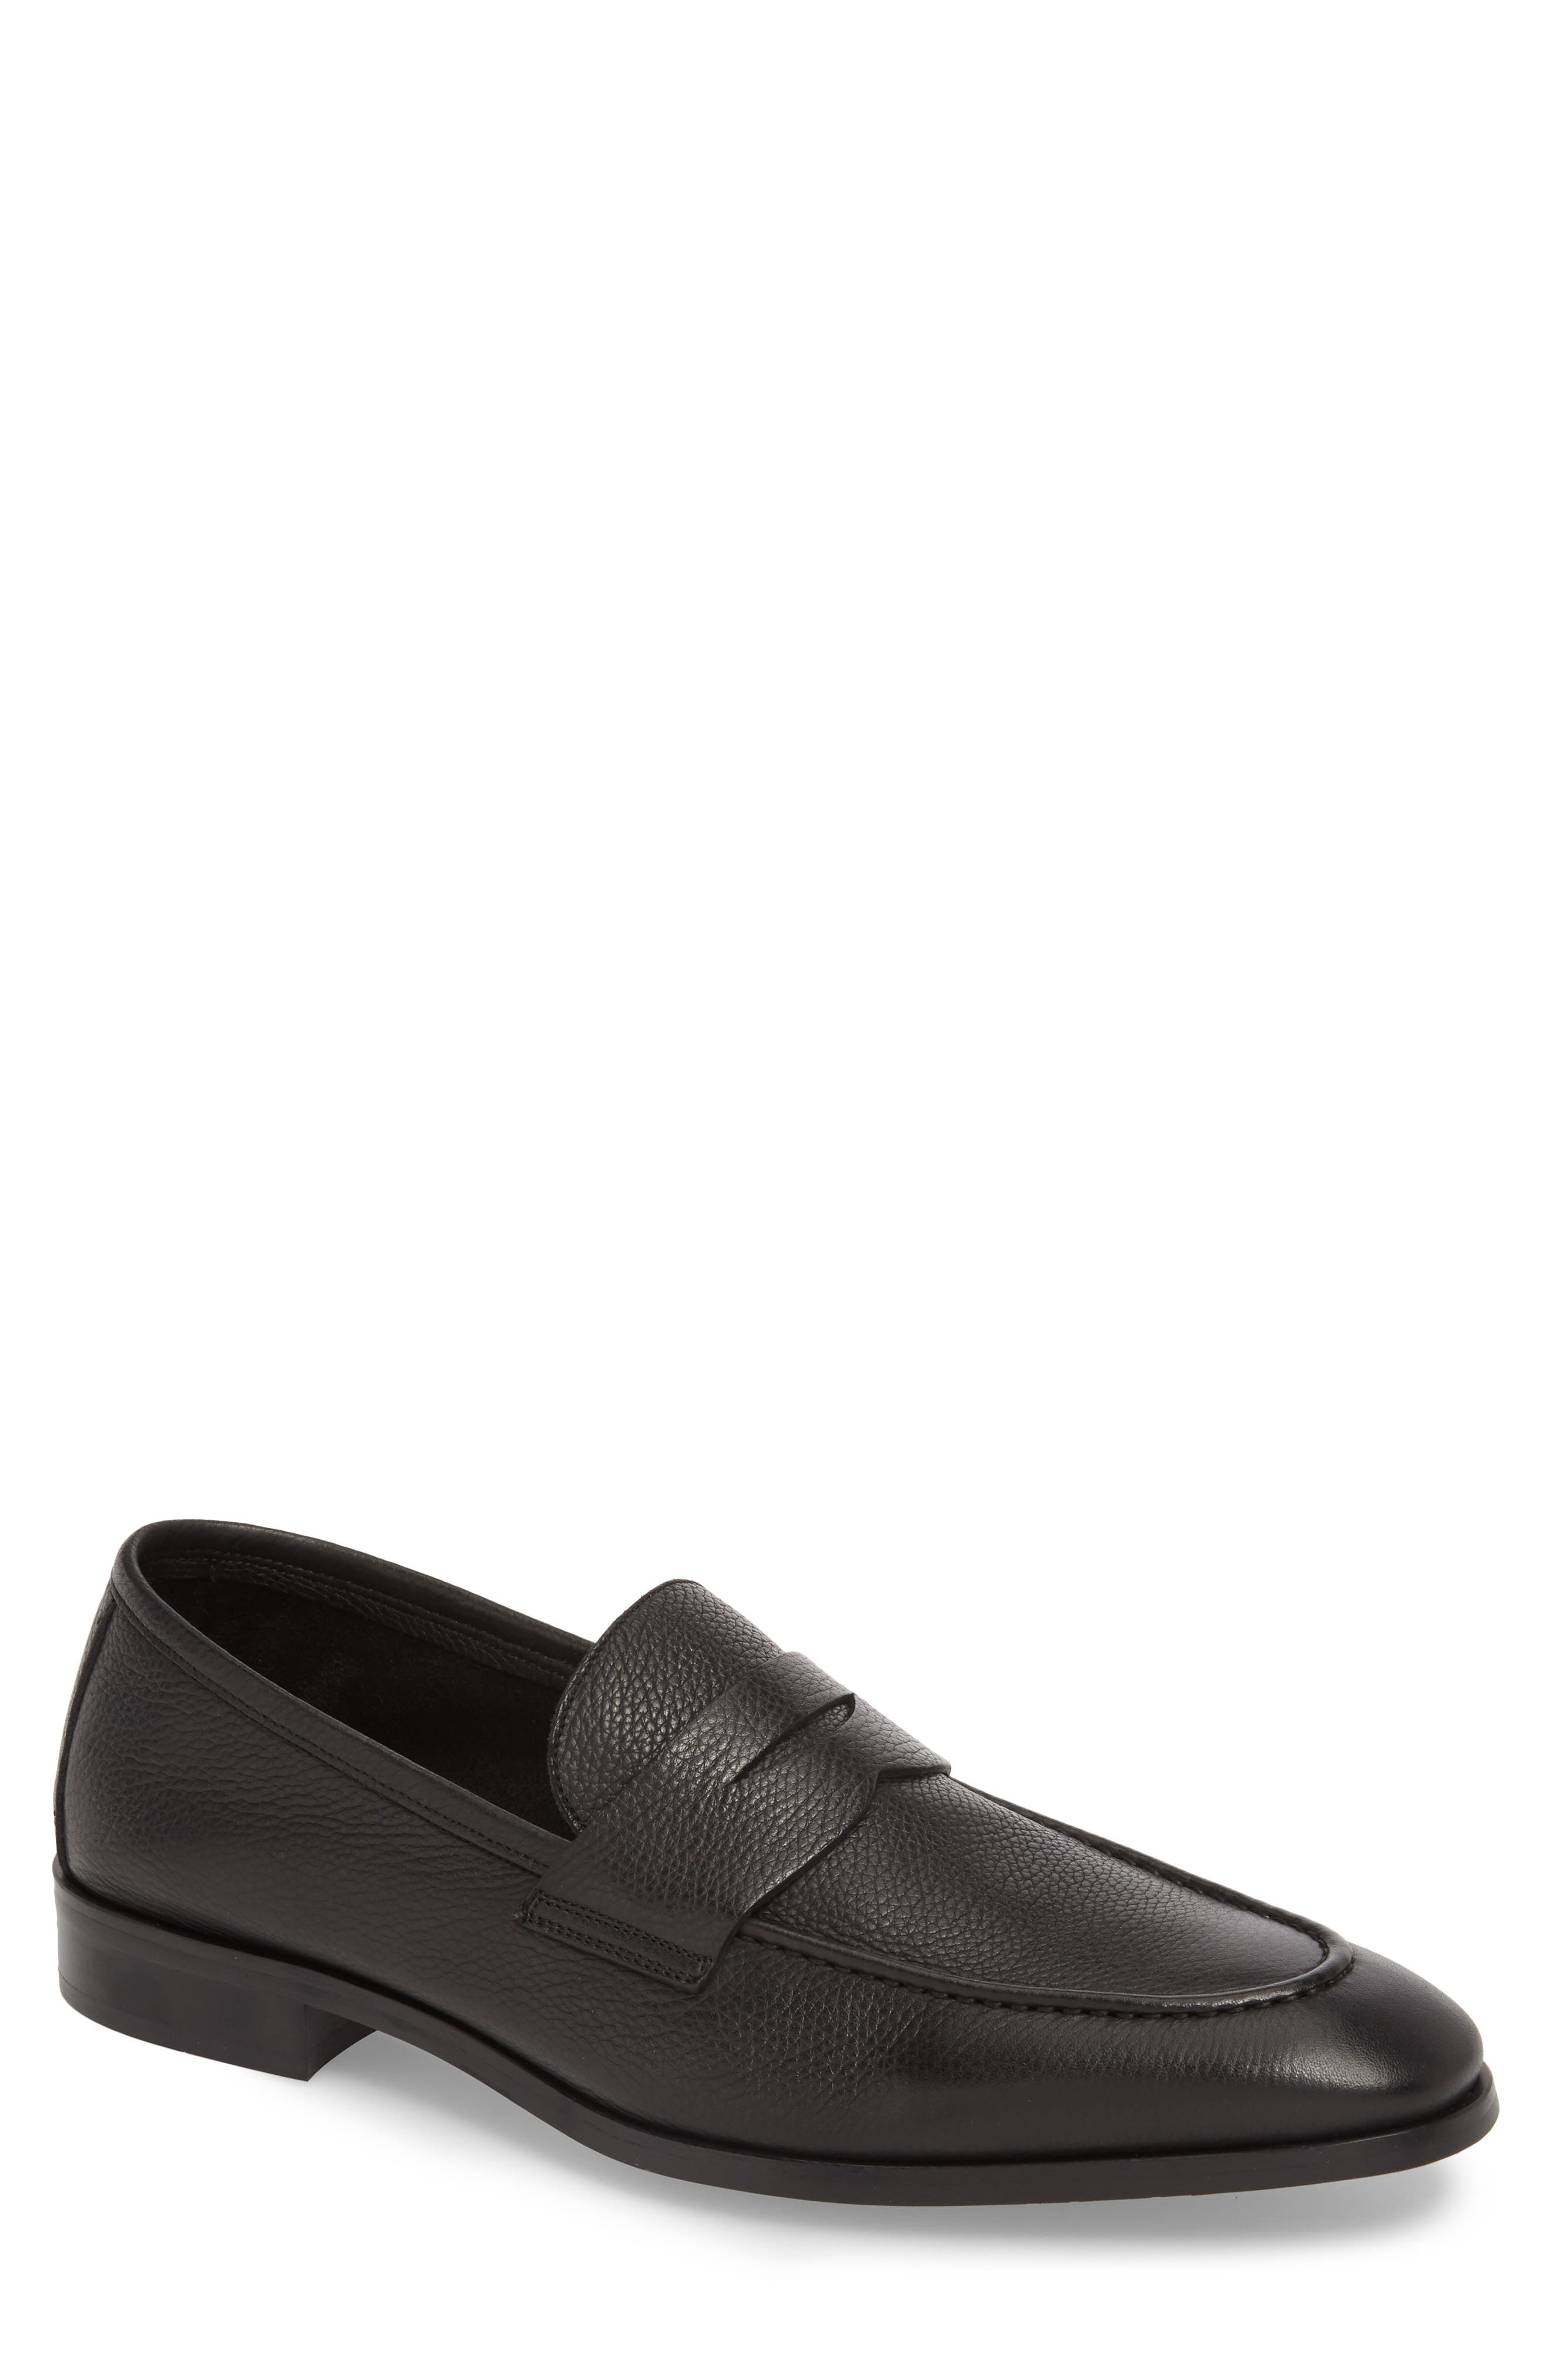 TO BOOT NEW YORK Men'S Johnson Leather Apron Toe Penny Loafers in Black